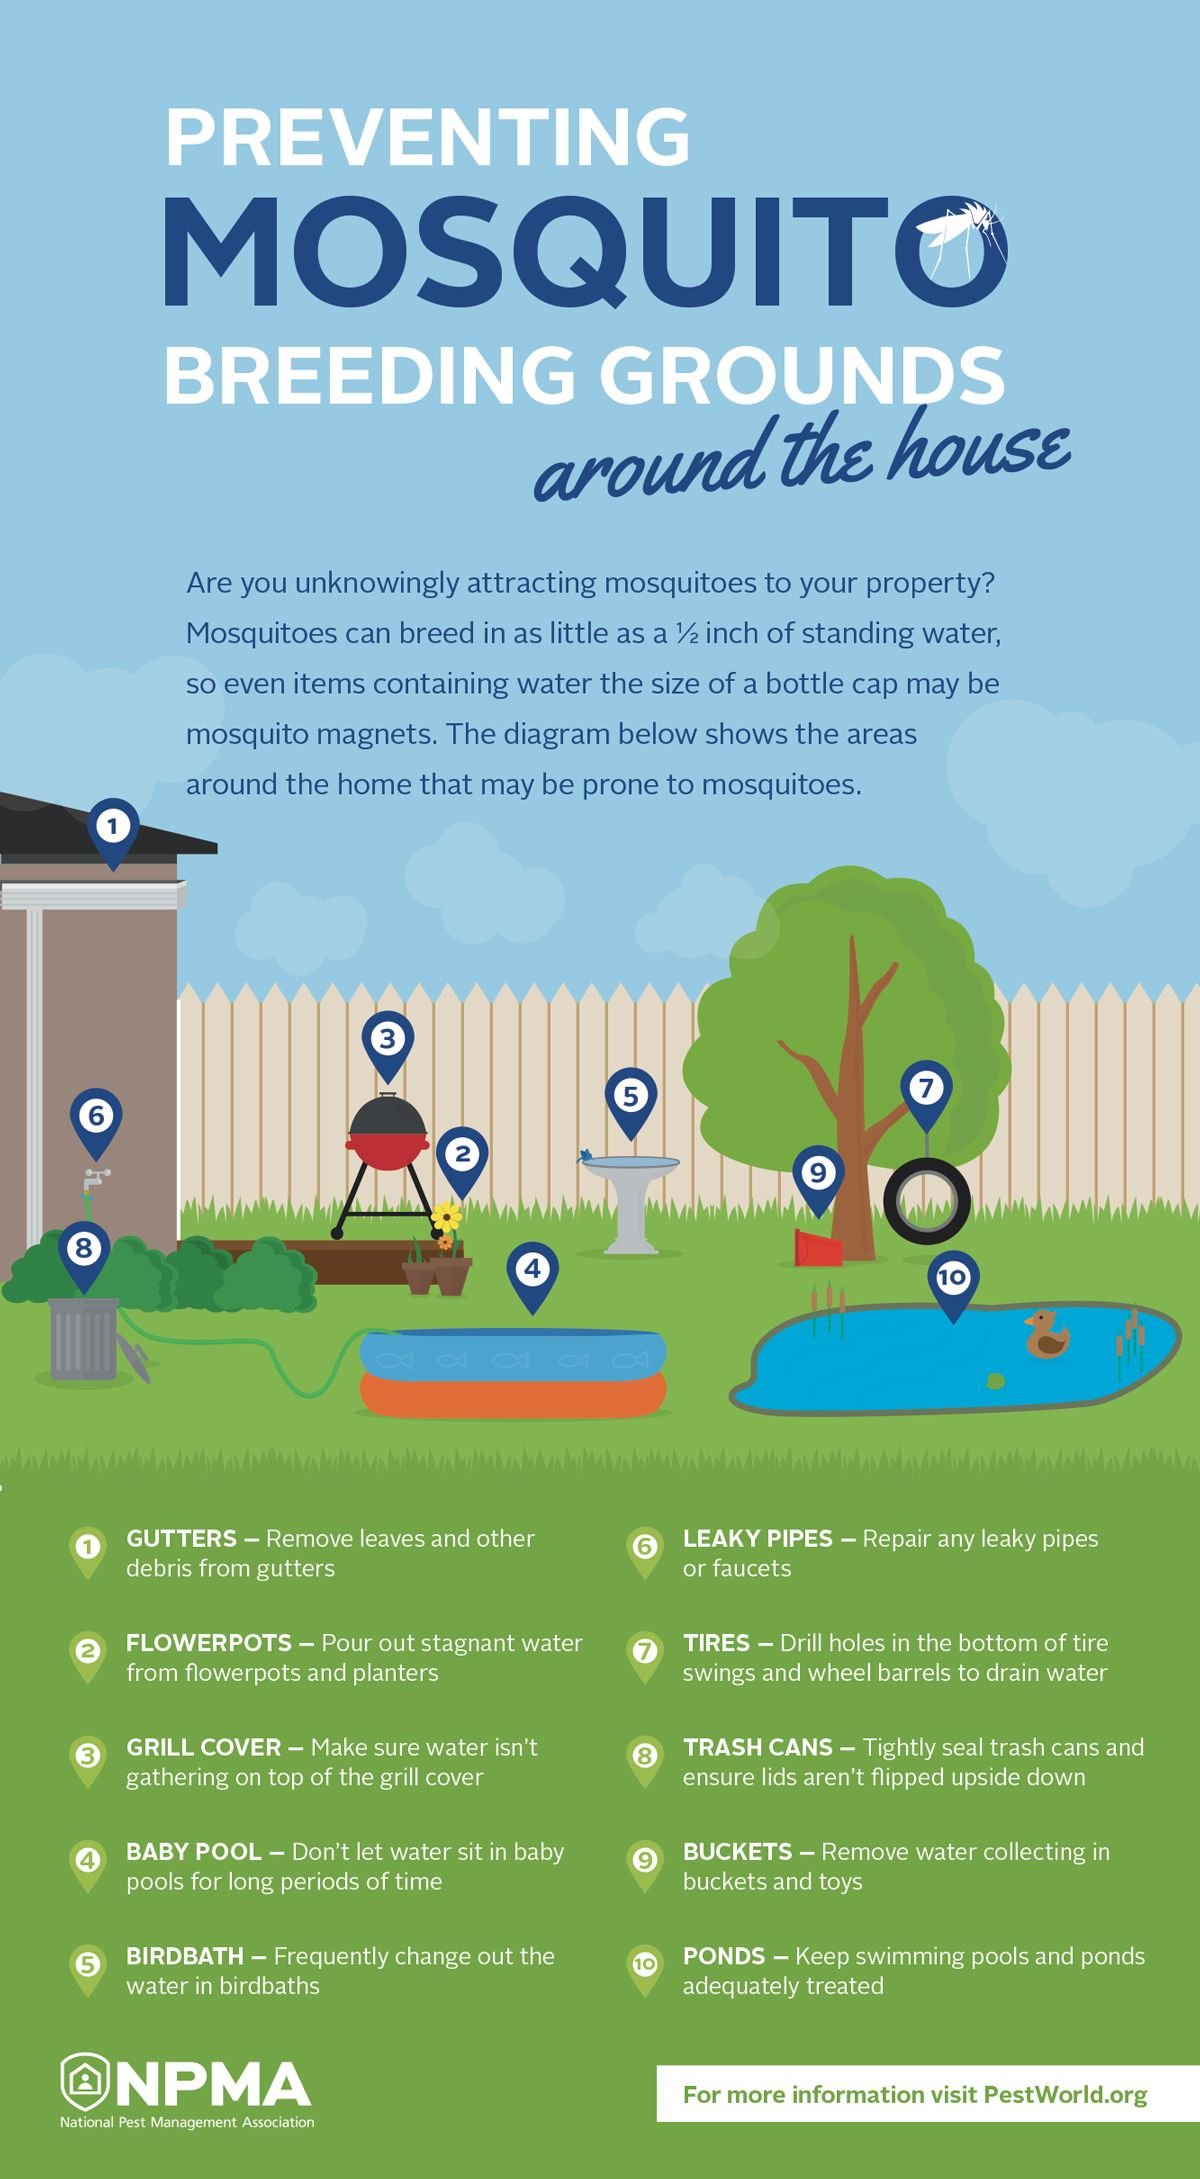 How to Prevent Mosquito Breeding in Rain Barrels advise